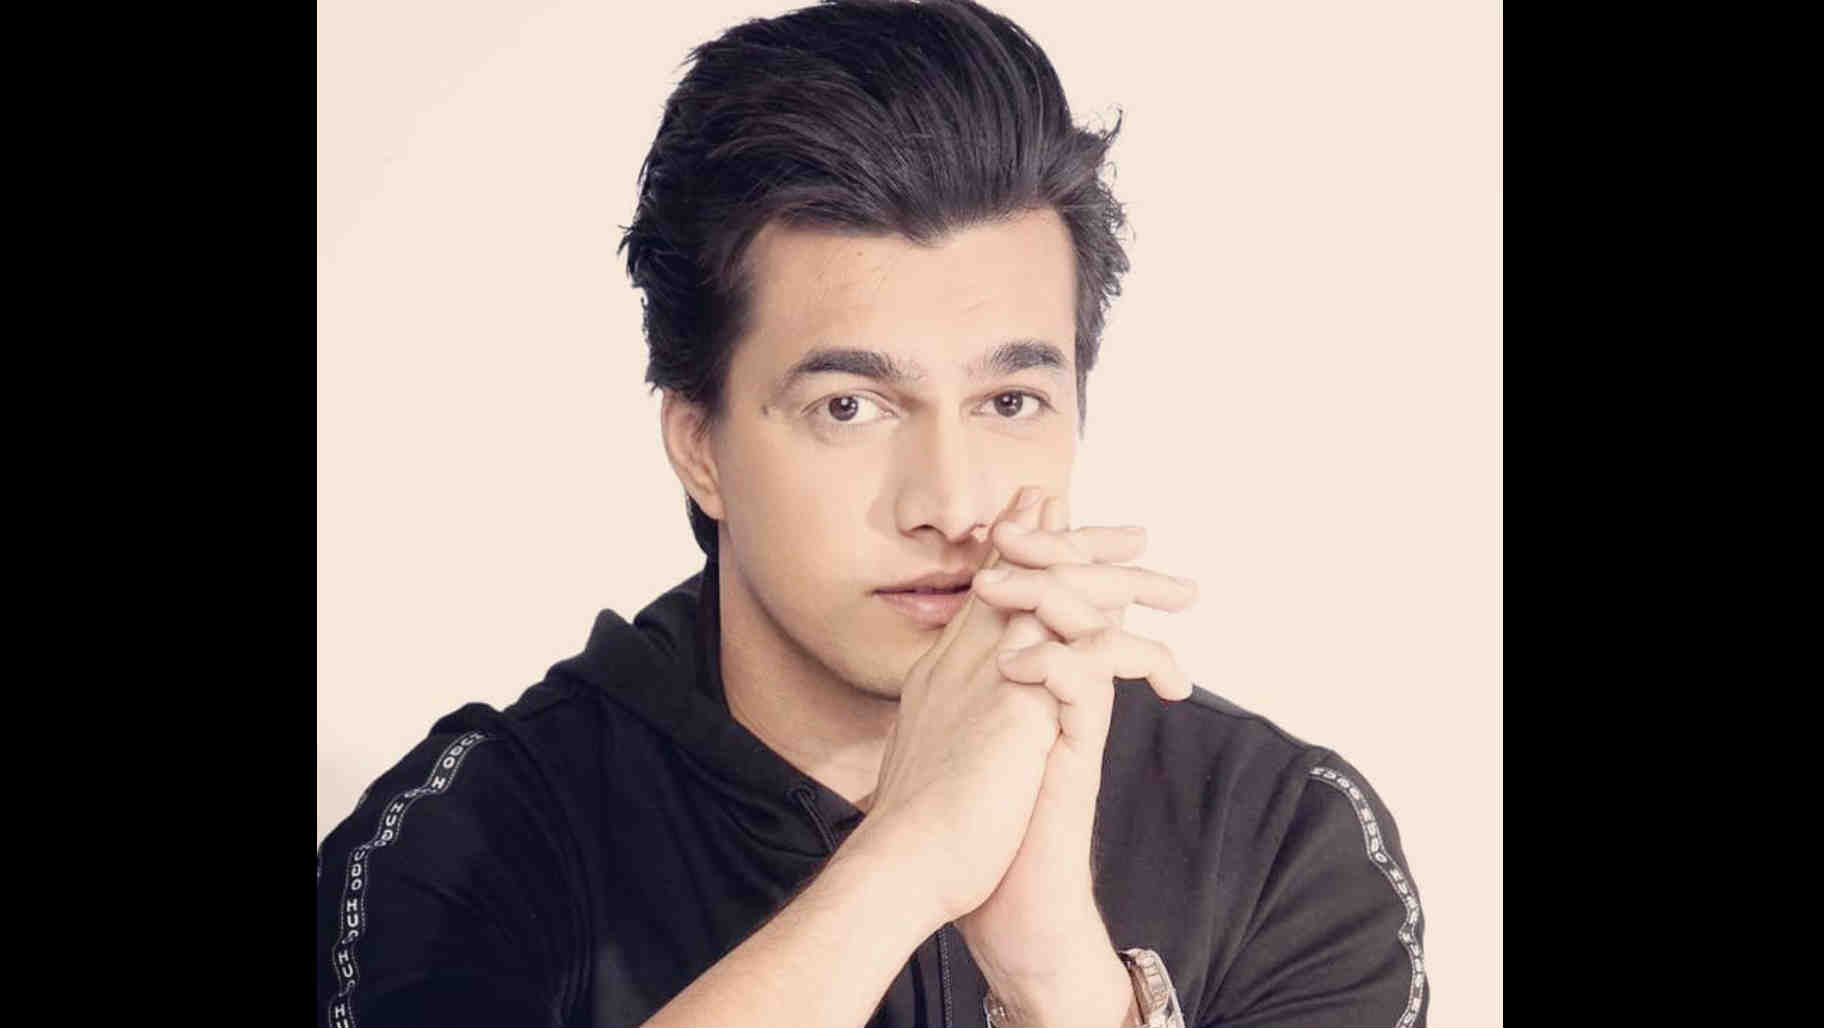 Mohsin Khan Is Single & Ready To Mingle, But Says His Ammi Has To Approve The Girl